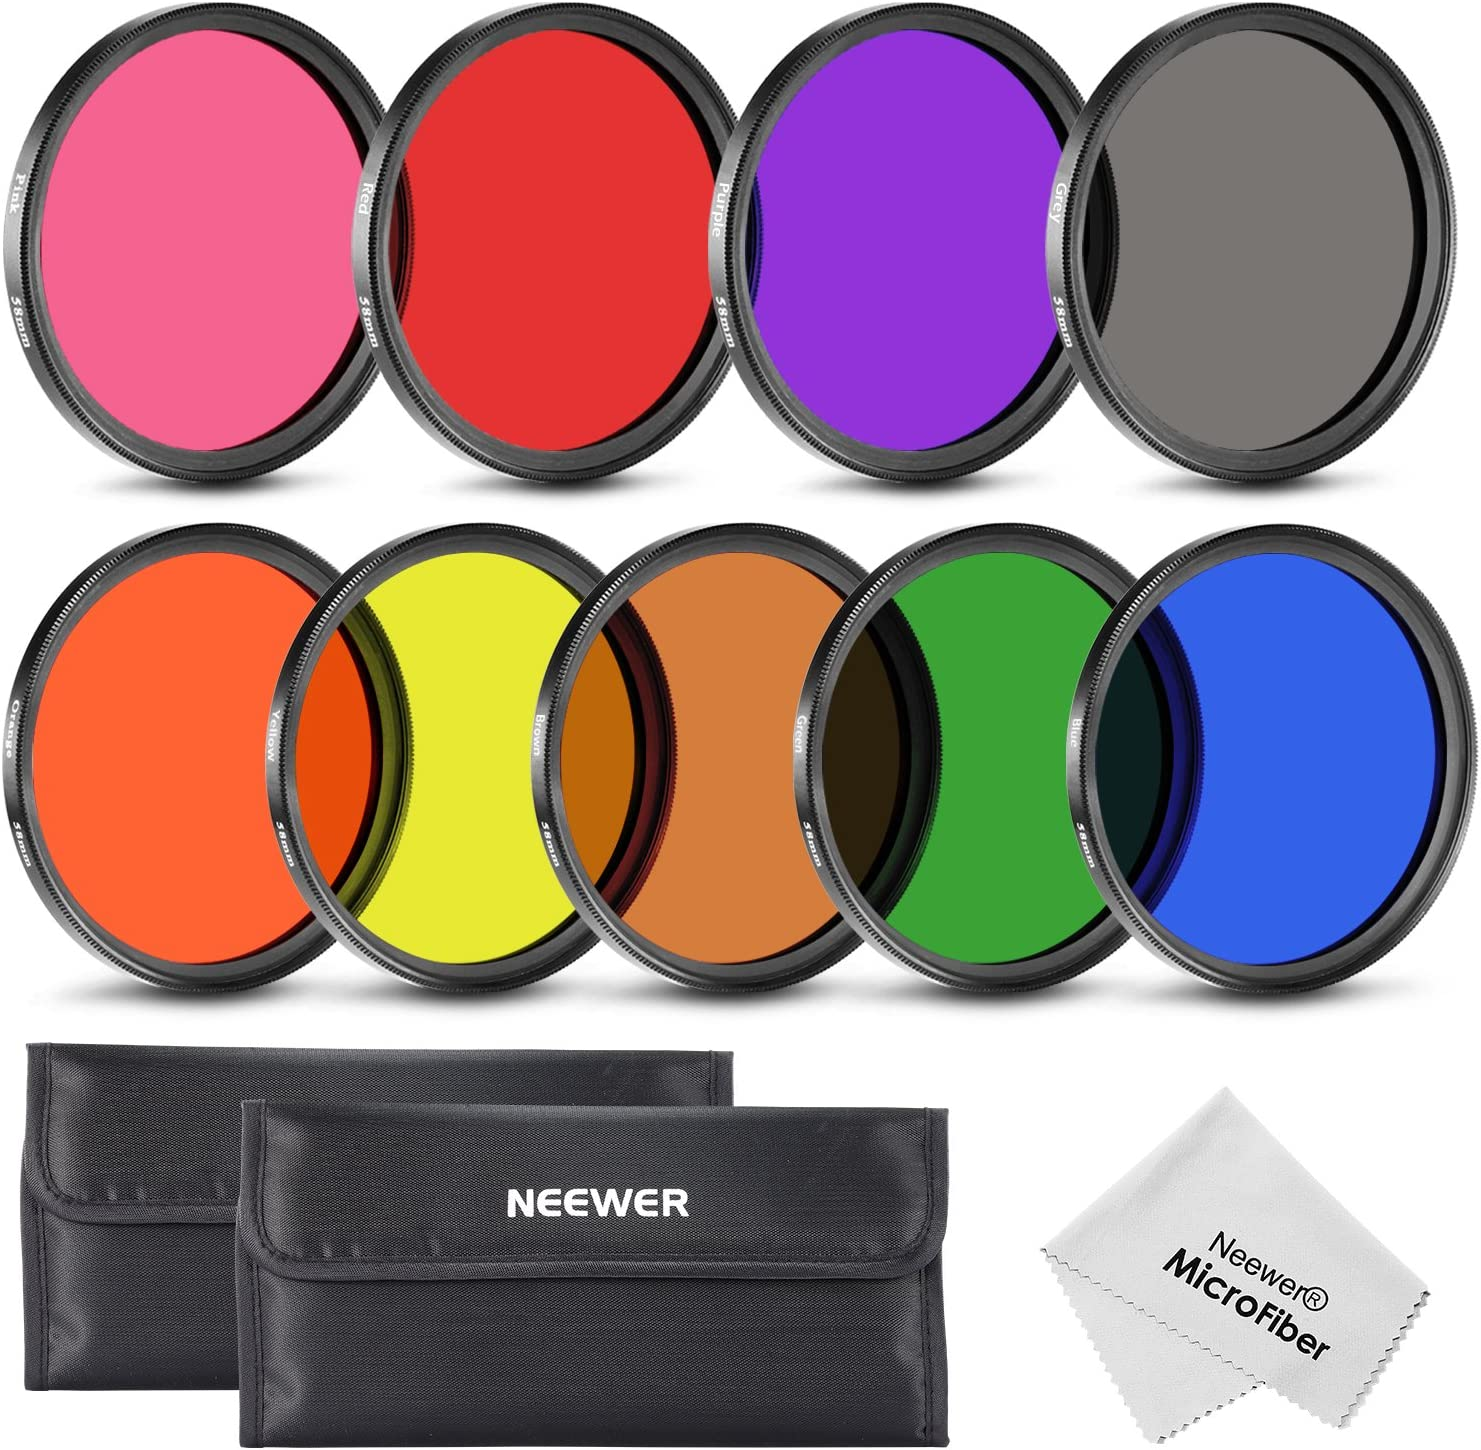 Neewer 9 Pieces 58MM Full Color Lens Filter Set for Camera Lens with 58MM Filter Thread Includes Red Orange Blue Yellow Green Brown Purple Pink and Gray ND Filters with Carry Pounch